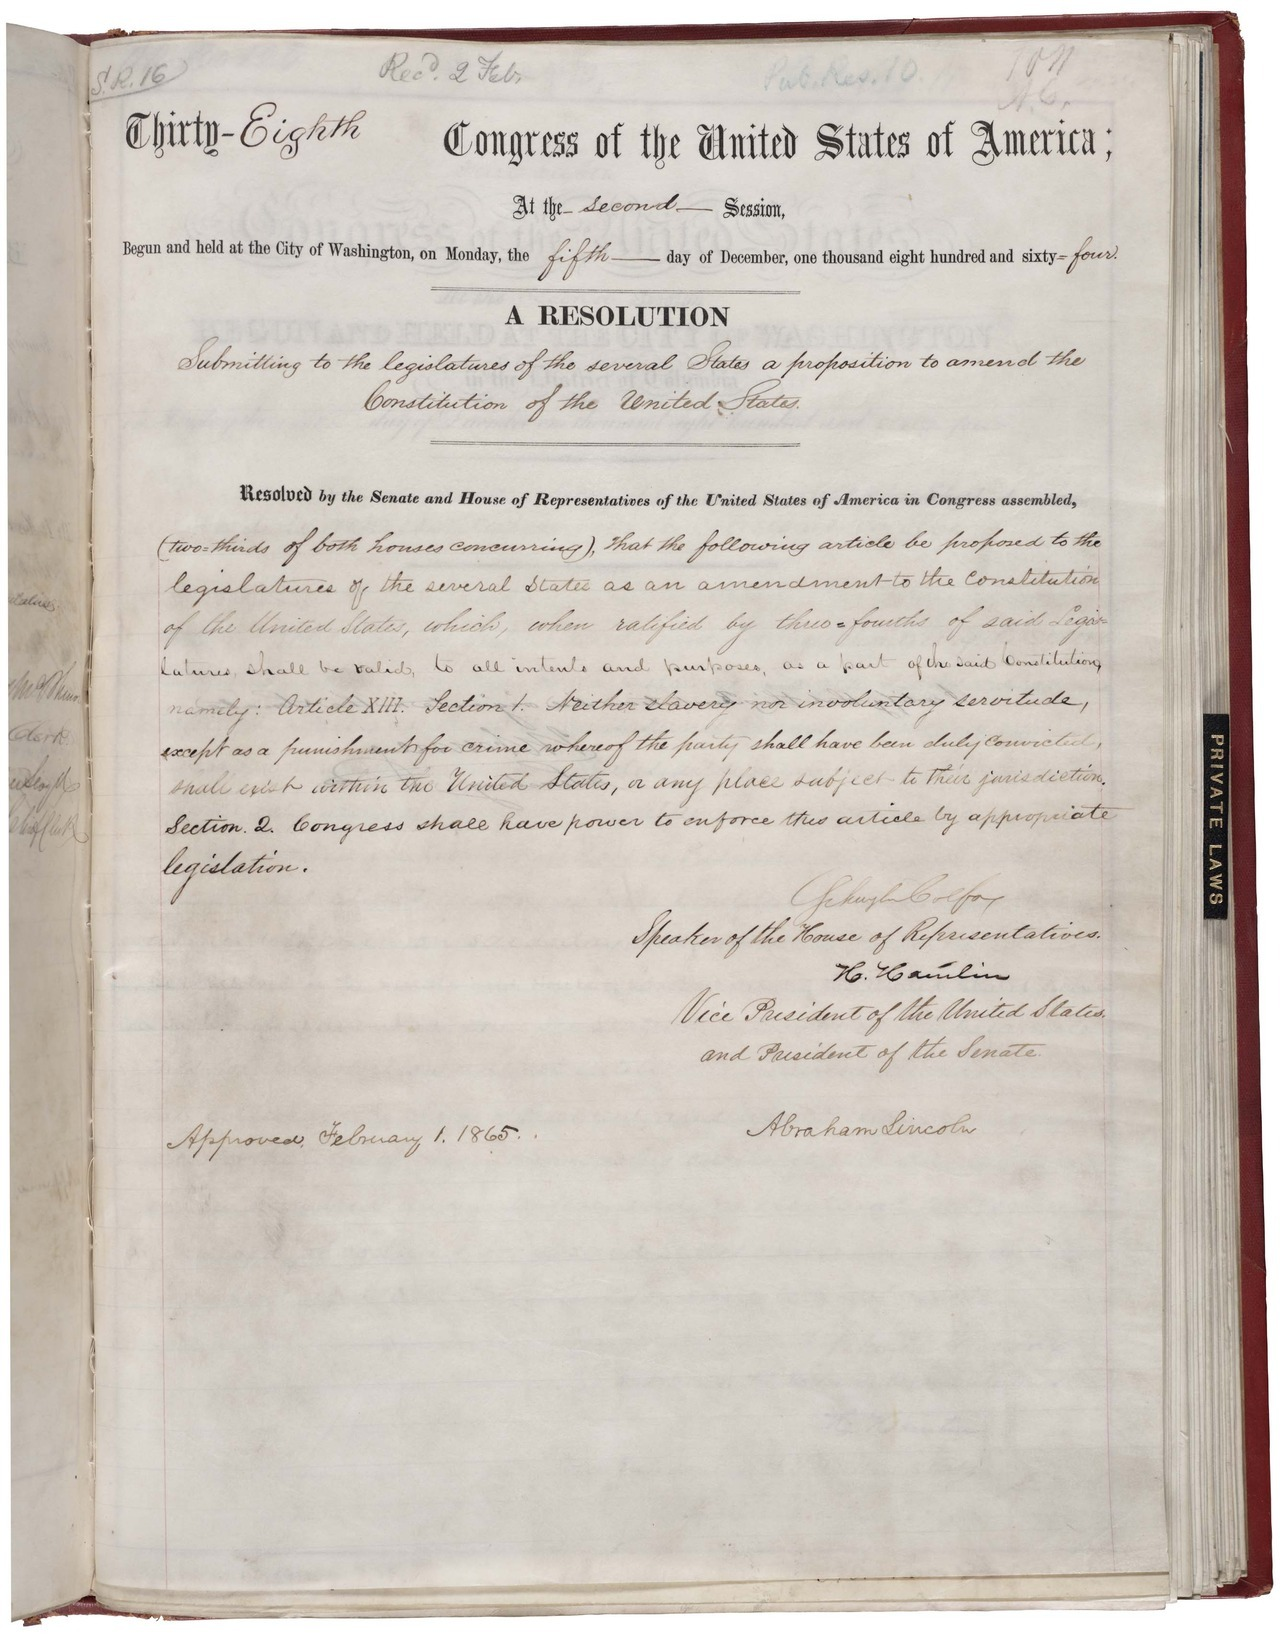 "147 Years Ago Today, the U.S. Outlawed Slavery Happy birthday, 13th Amendment! In honor of the anniversary, here's a collection of excellent stories from The Atlantic's archives. Where Will It End? (Dec. 1857): In The Atlantic's second issue, Edmund Quincy urges readers to take a stand against slavery. ""It is only the statement of the truism in moral and in political economy,"" he wrote, ""that true prosperity can never grow up from wrong and wickedness."" American Civilization (Apr. 1862): Ralph Waldo Emerson's vehement argument for the federal emancipation of slaves. ""Morality,"" above all else, he asserted, ""is the object of government."" The President's Proclamation (Nov. 1862): Seven months later, Emerson hails Lincoln's Emancipation Proclamation as an act that would mean ""the lives of our heroes have not been sacrificed in vain."" Reconstruction, and an Appeal to Impartial Suffrage (Dec. 1866): In the same month the 13th Amendment was adopted, Frederick Douglass pushed lawmakers to grant black Americans the vote: ""Slavery is not abolished until the black man has the ballot."" The Death of Slavery (Jul. 1866): William Cullen Bryant's stirring poem about the demise of the ""cruel reign"" of slavery. This is a very, very incomplete collection of stories from the era about slavery. (We were, after all, an abolitionist magazine.) For more, take a look at the commemorative Civil War issue we published last year. [Image: Wikimedia Commons/National Archives]"